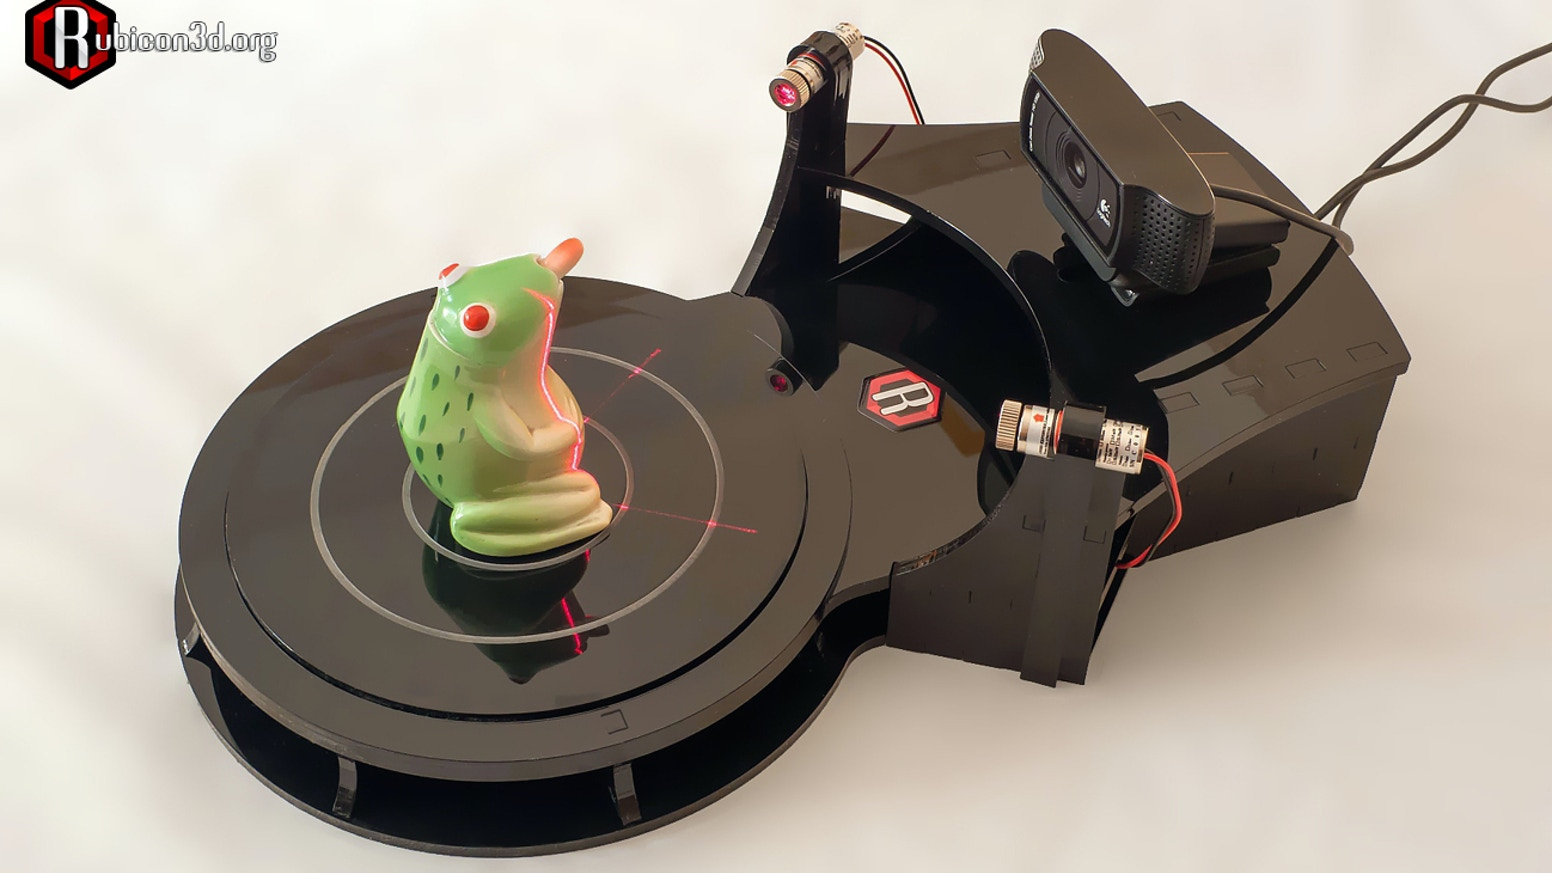 Rubicon 3D scanner by Robert Mikelson and Grant Cox » wire harness on